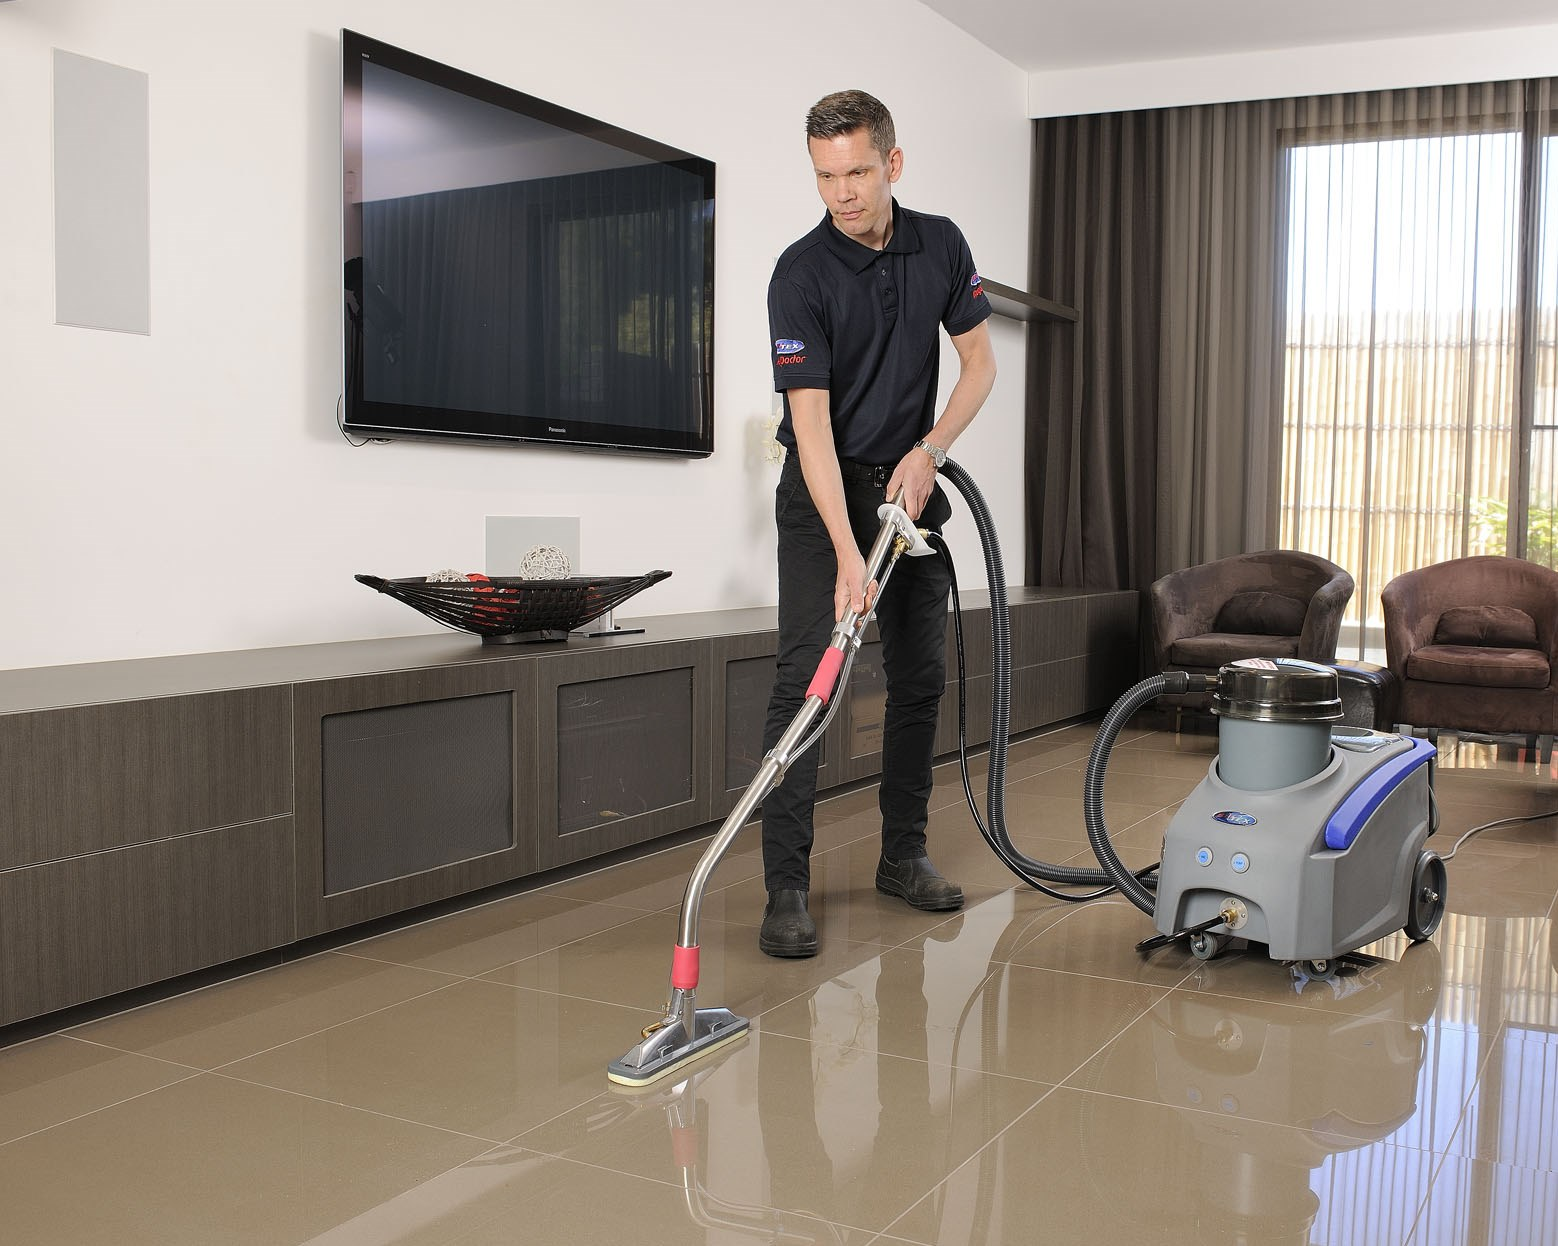 For cleaning tiles to a professional standard